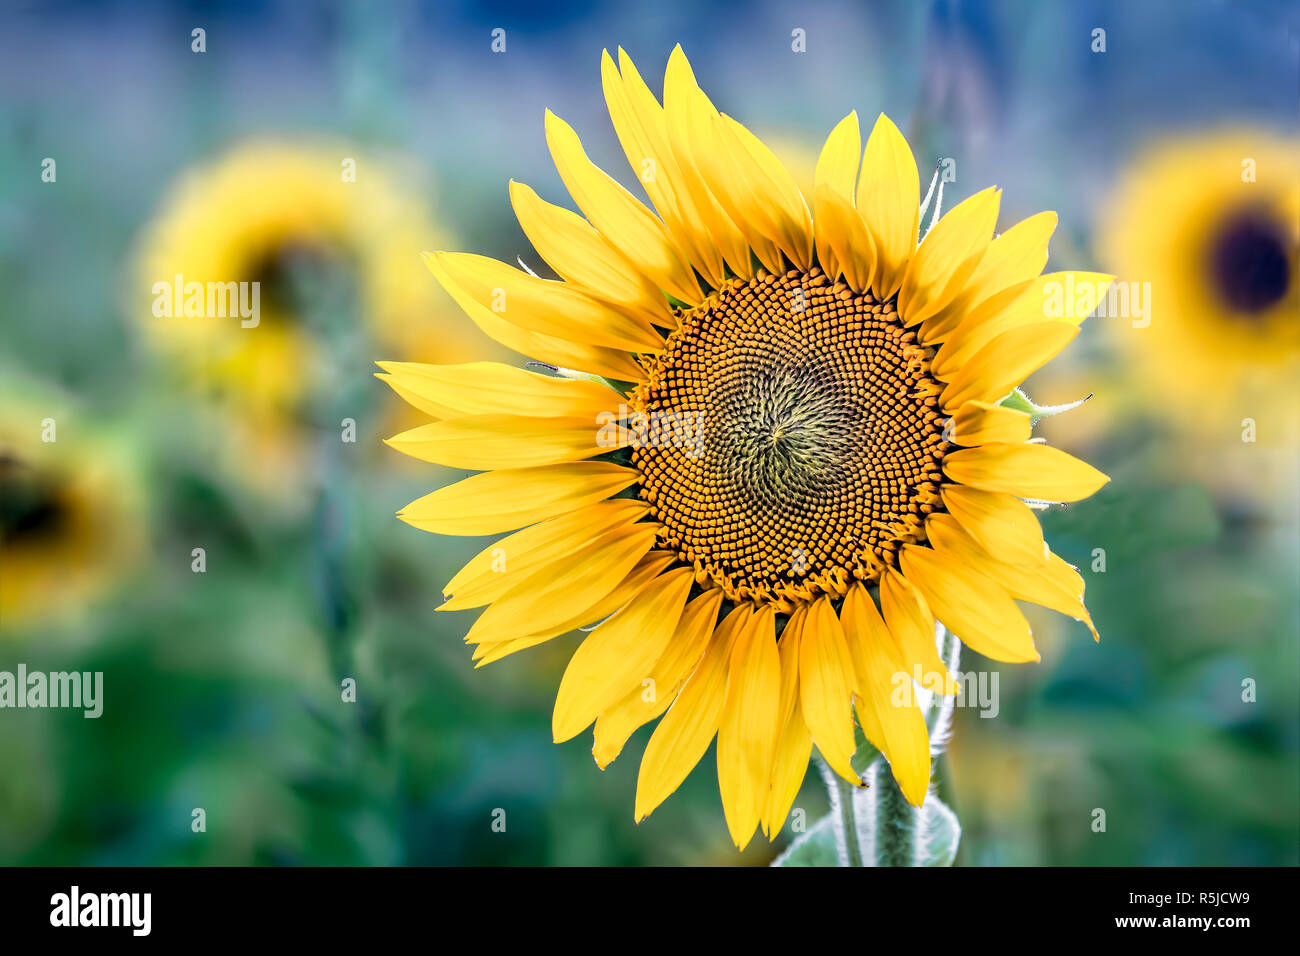 A beautiful sunflower blooms in a field on a bright, sunny day in the Midwest. Stock Photo